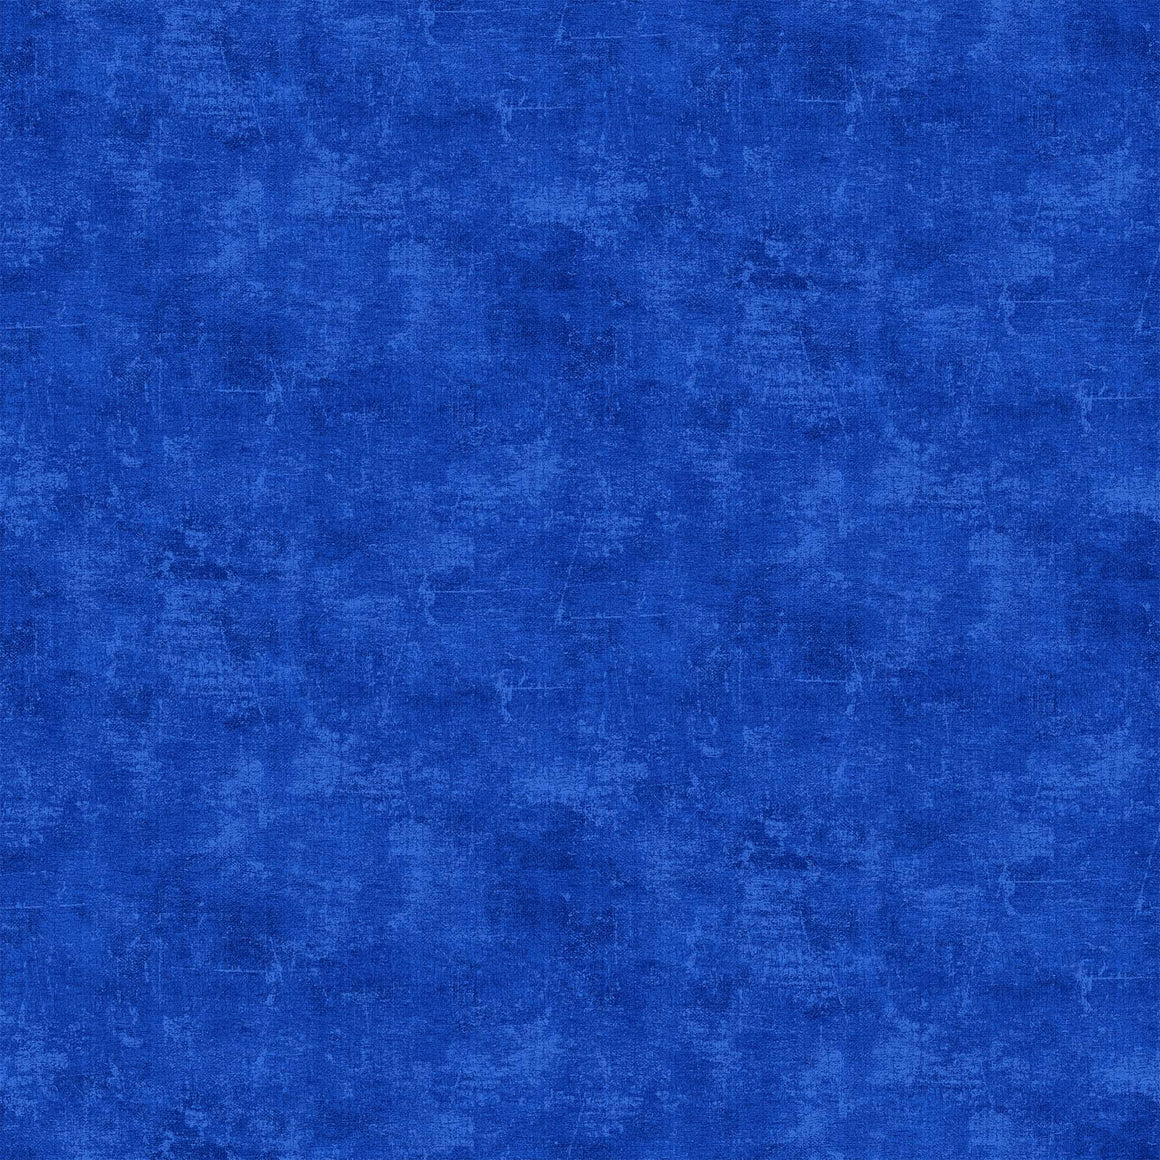 Cobalt - Canvas Texture - 9030-46, Designer Fabric, Northcott, [variant_title] - Mad About Patchwork